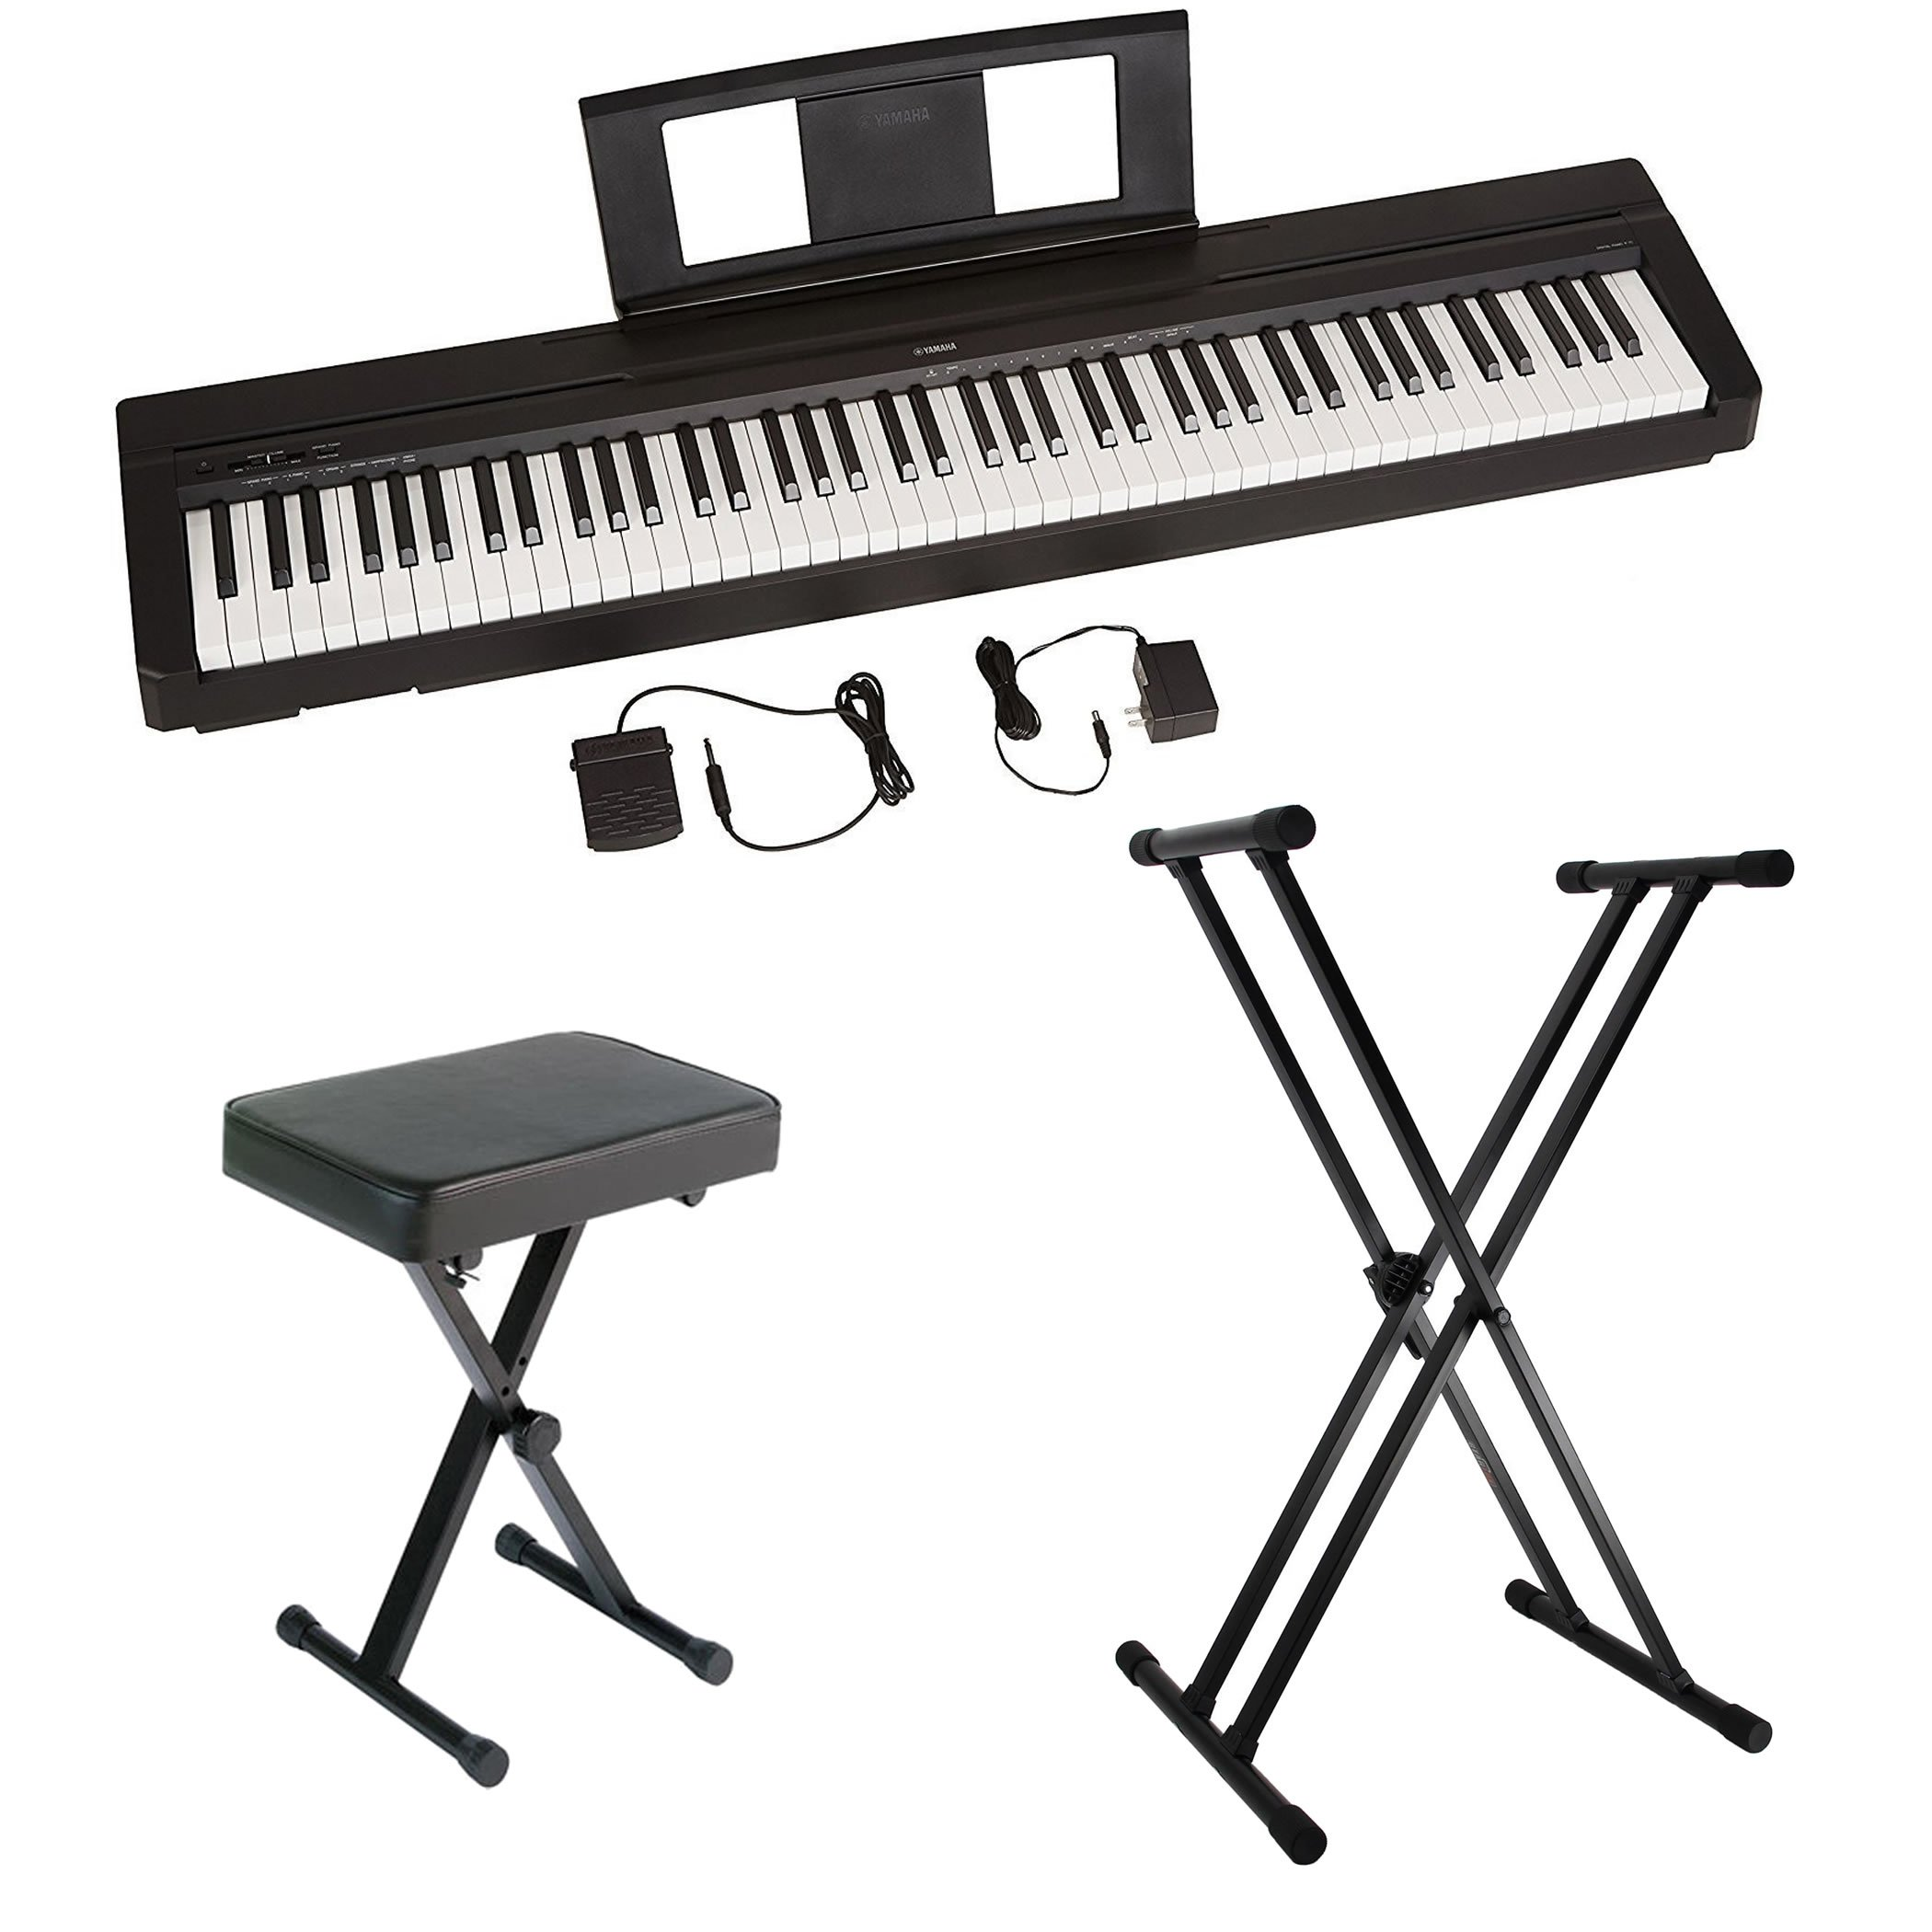 Yamaha P45 88-Key Weighted Action Digital Piano with Sustain Pedal, Power Supply, Double-Braced X-Style Keyboard Stand, and Padded X-Style Piano Bench by Yamaha Genesis